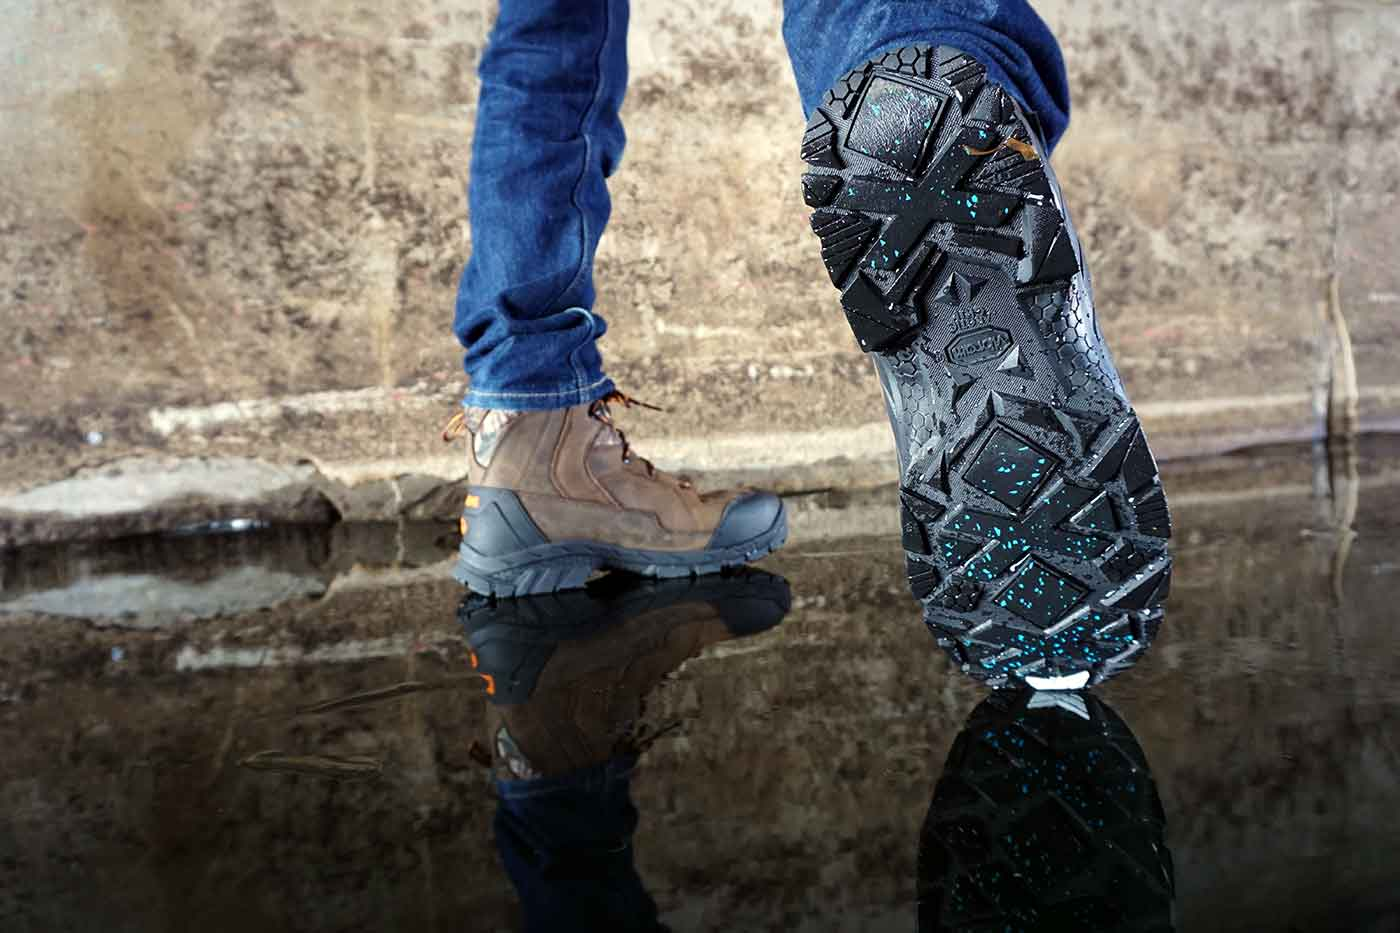 2dbfb11887e First Look: Wolverine Boot With Vibram 'Arctic Grip' Sole | GearJunkie